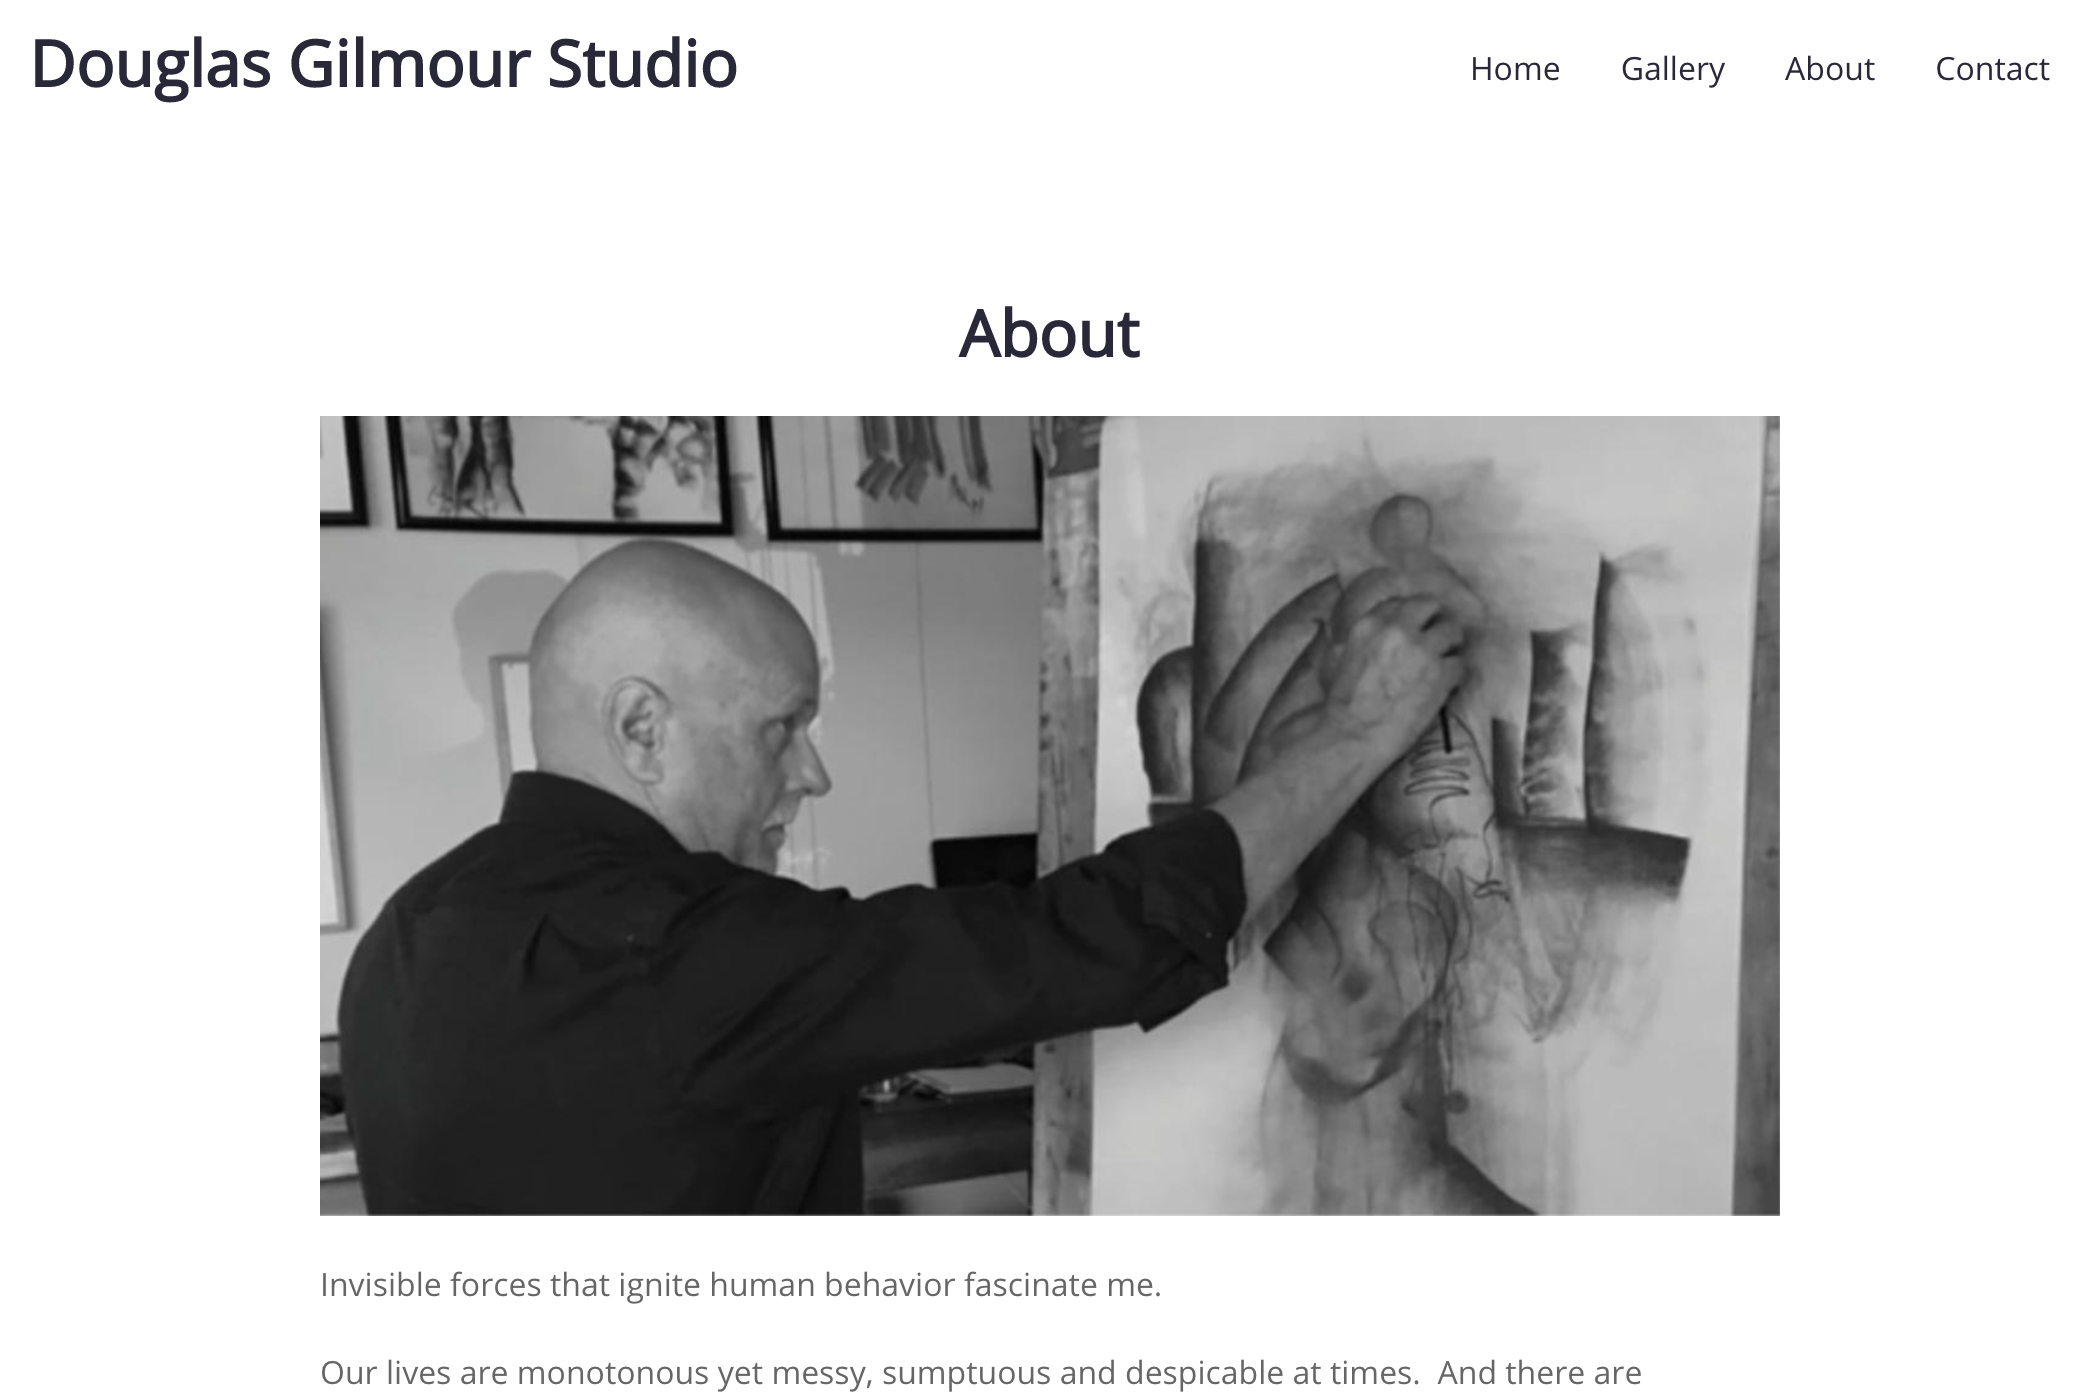 website design for an artist - about page